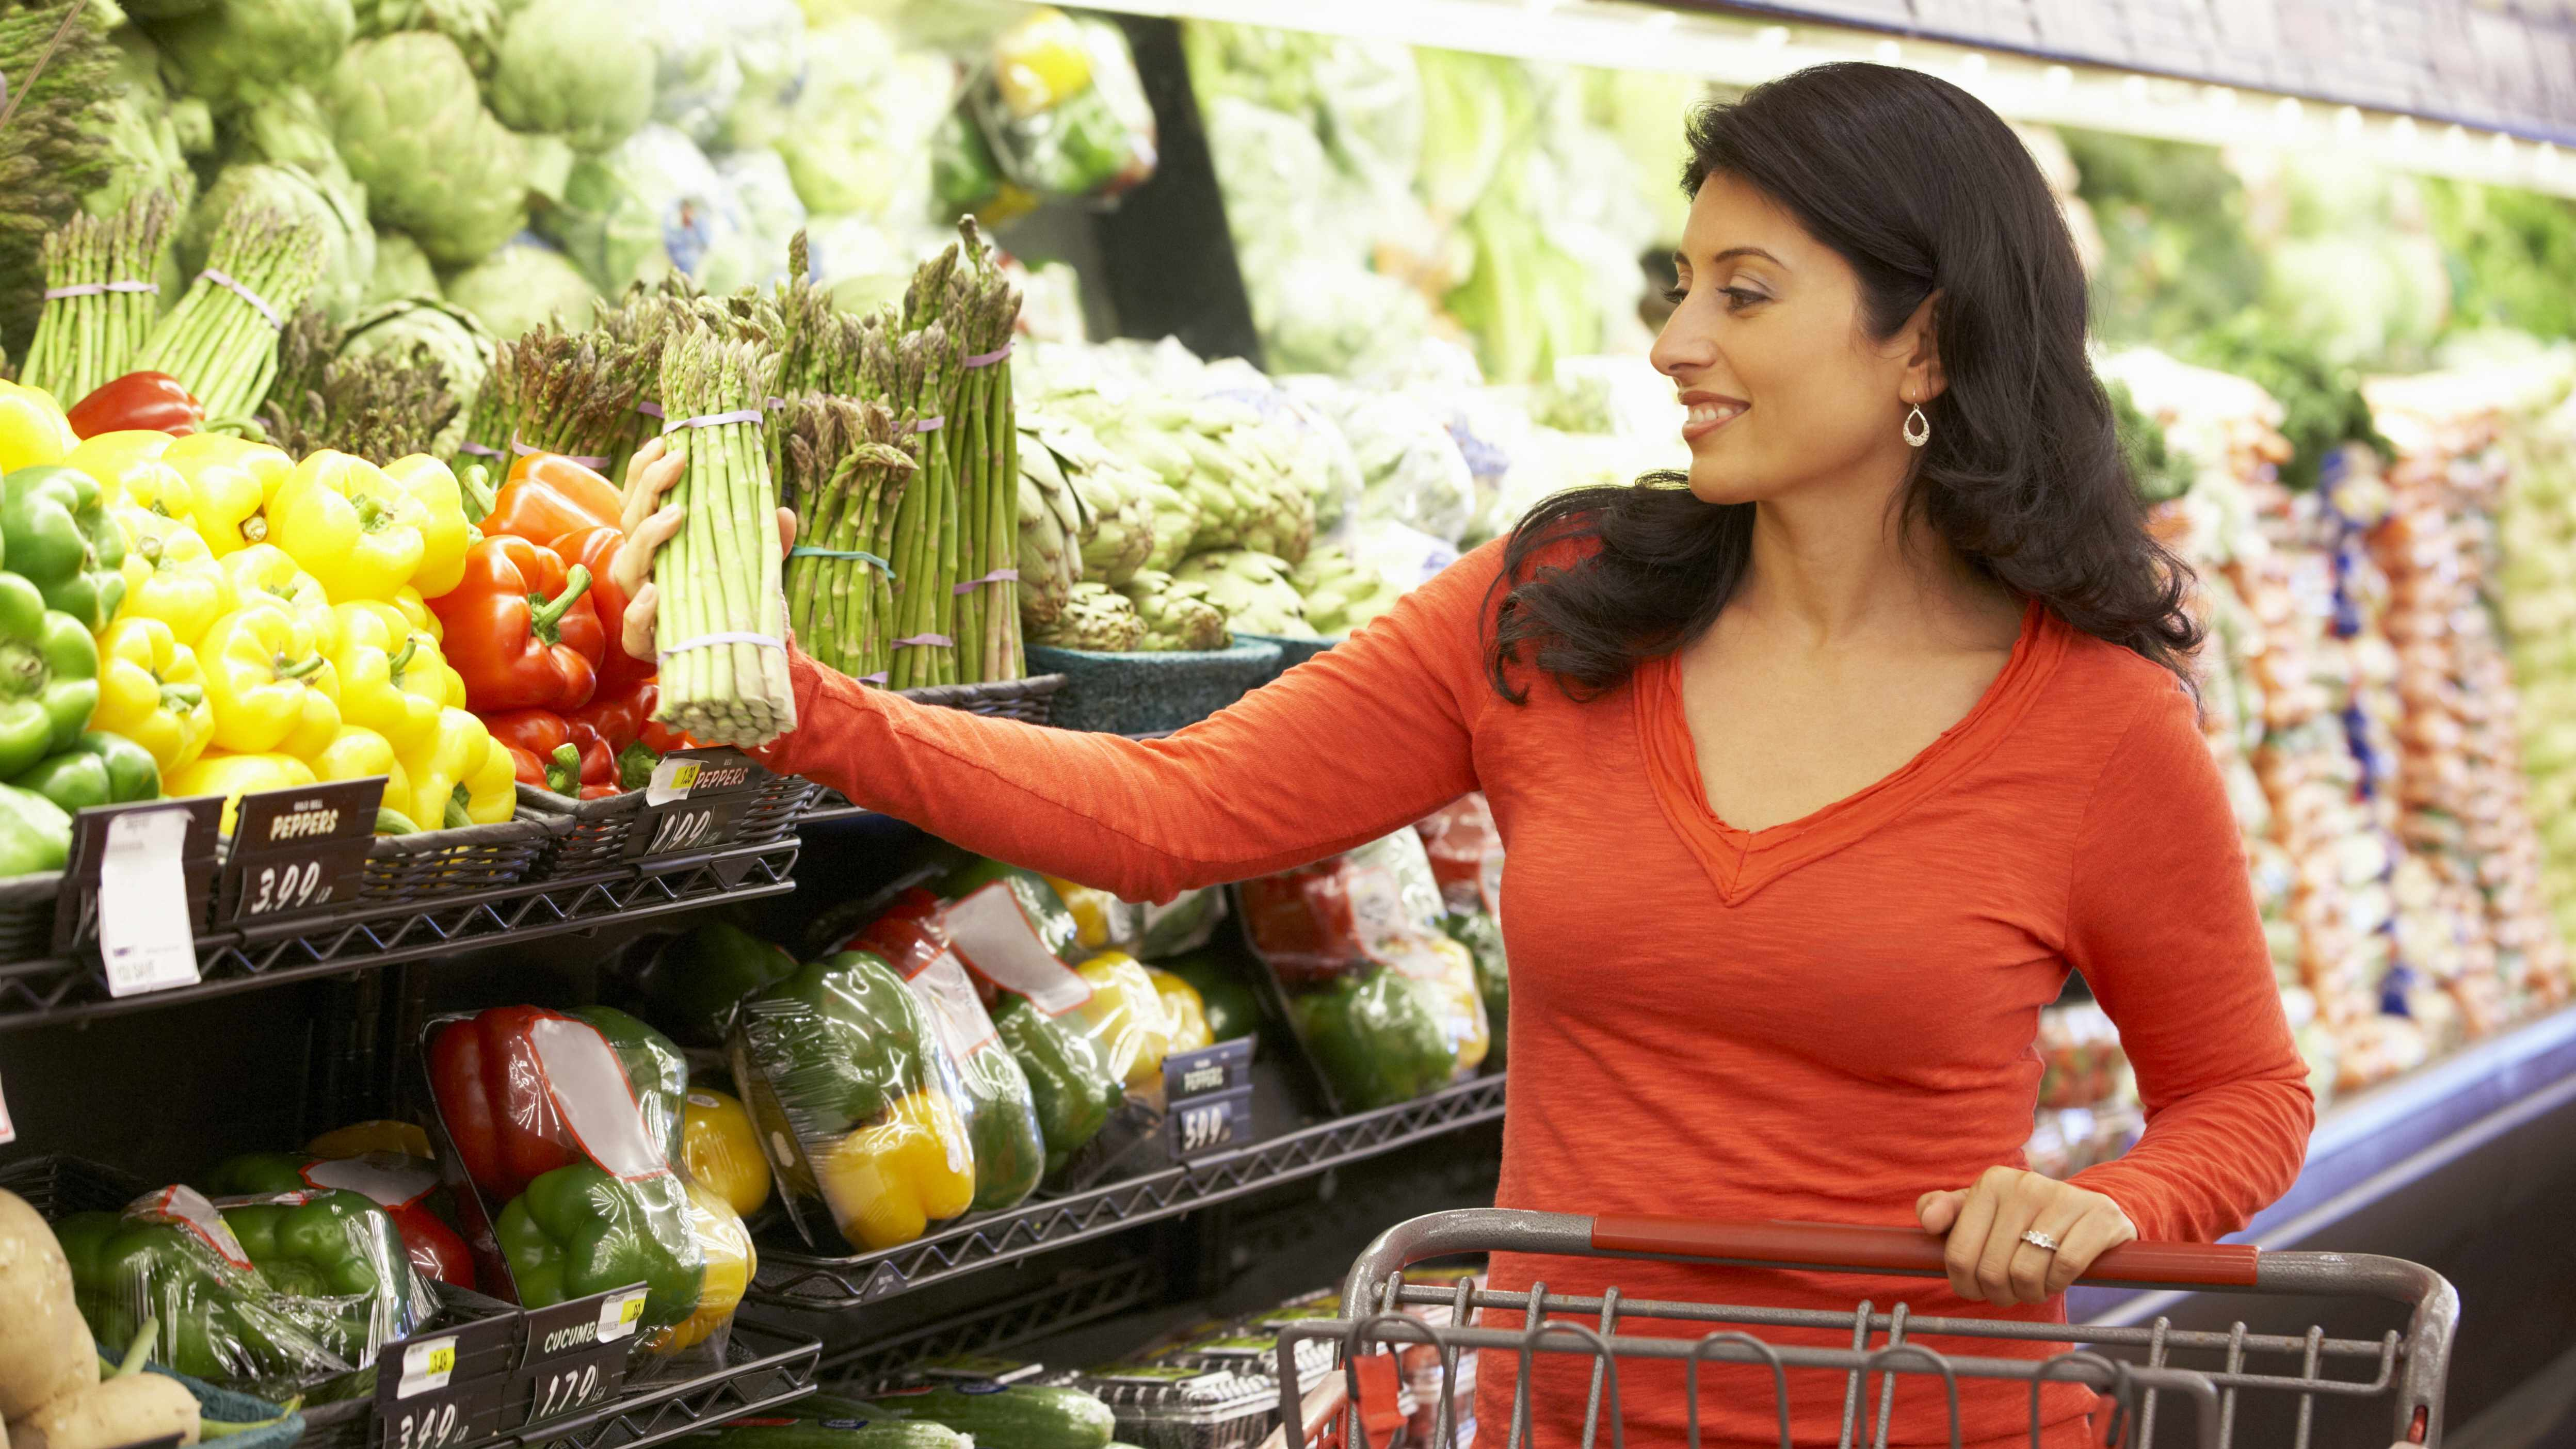 woman shopping in a grocery store for healthy food, vegetables